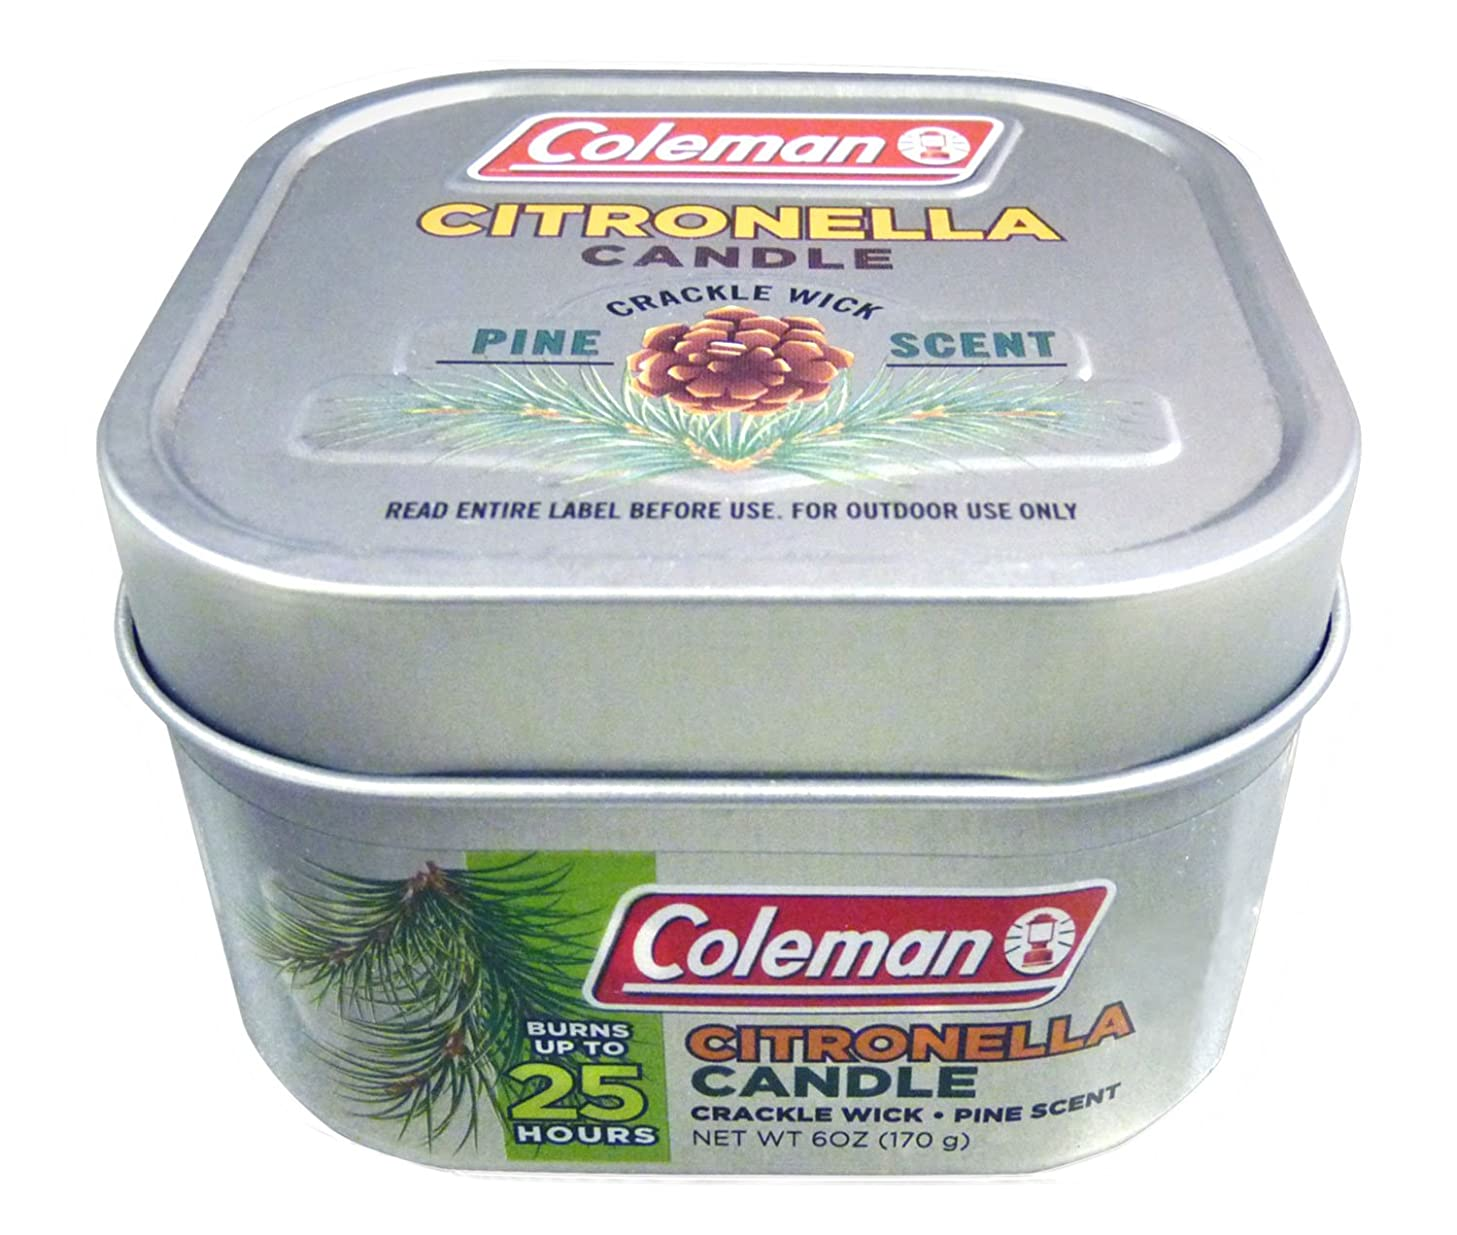 Coleman Scented Citronella Candle with Wooden Crackle Wick ivwwrtmih